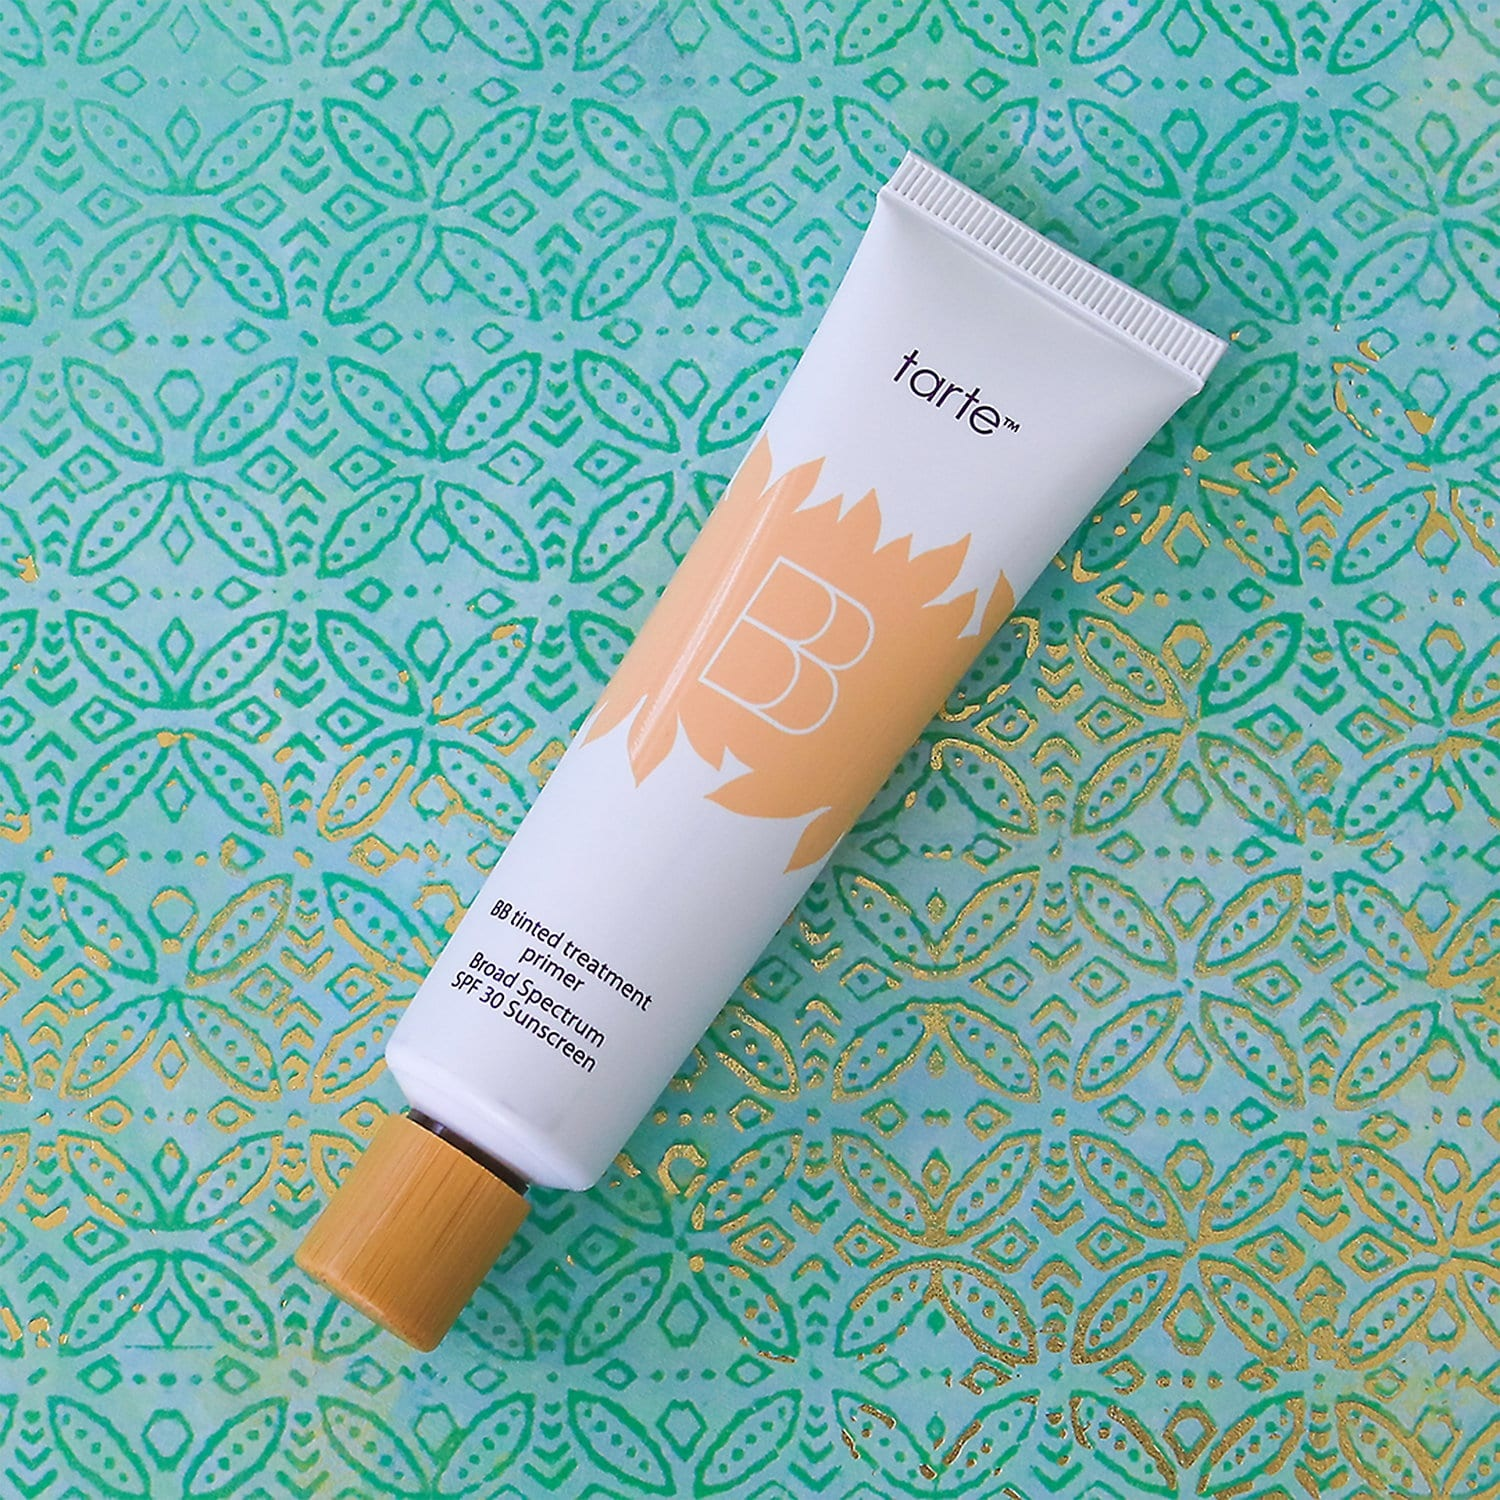 TARTE BB Tinted Treatment 12-Hour Primer Broad Spectrum SPF 30 Sunscreen